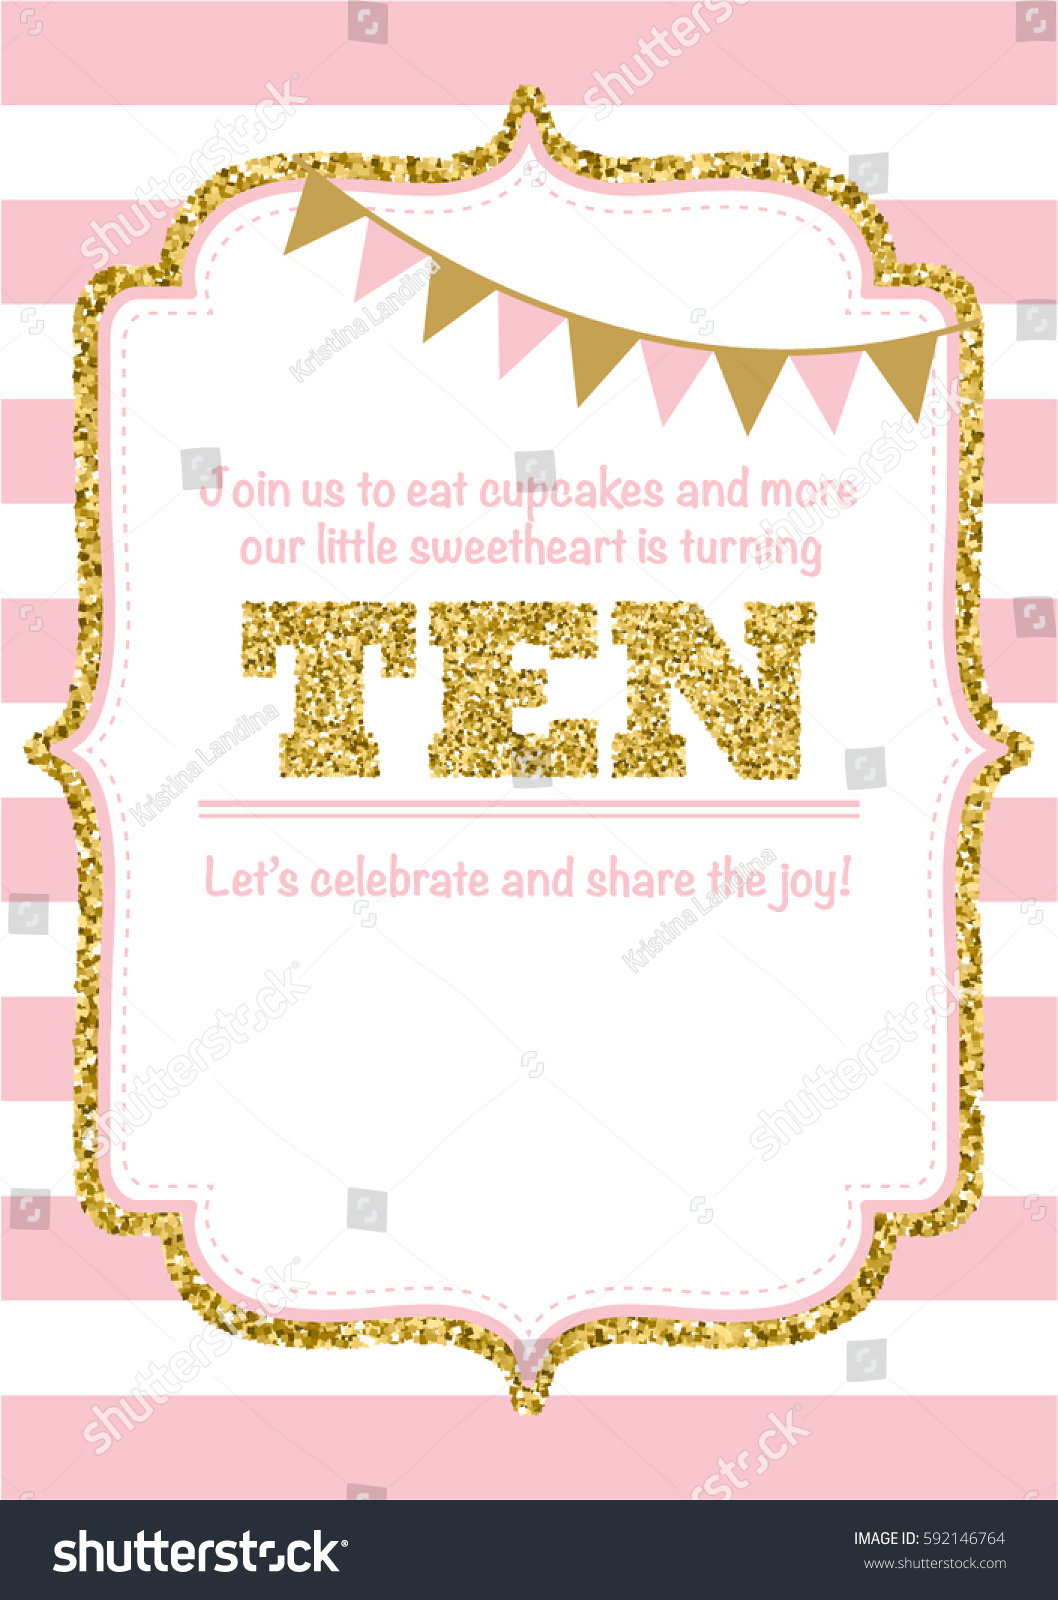 Birthday Card Invitation Turning Ten Pink Stock Vector (Royalty Free ...